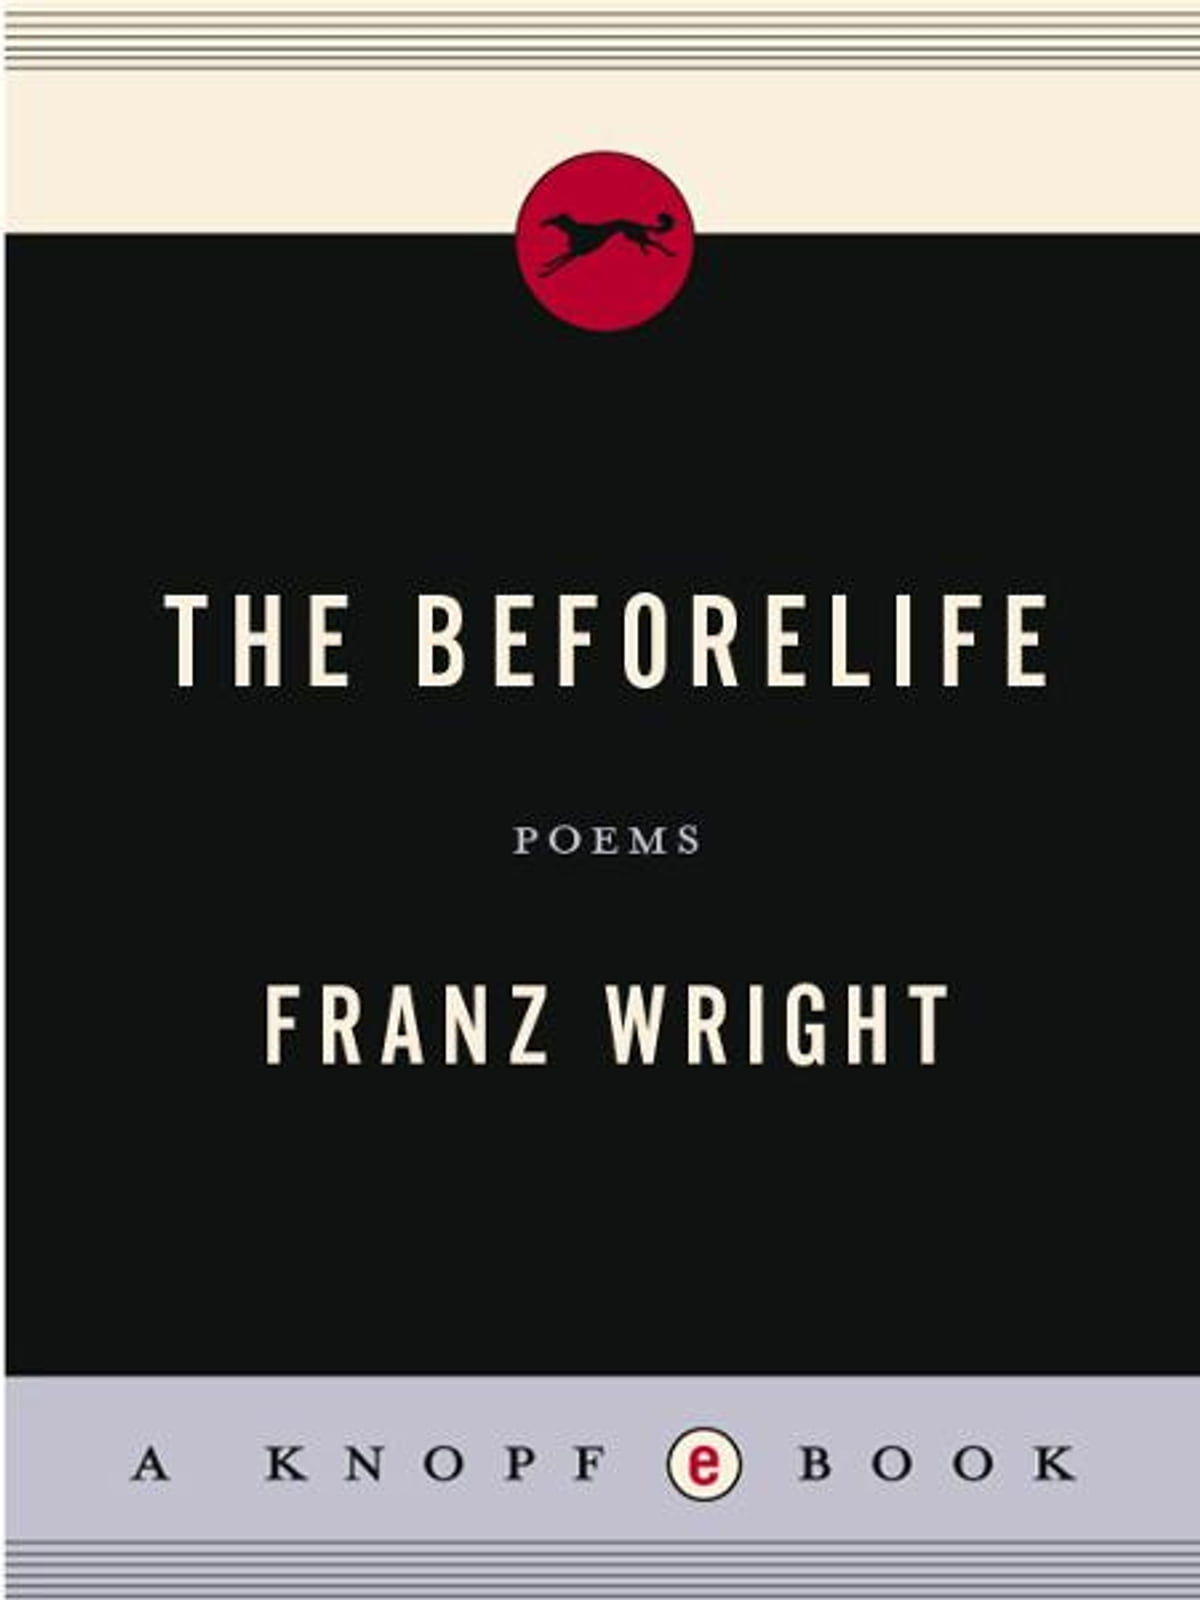 The Beforelife